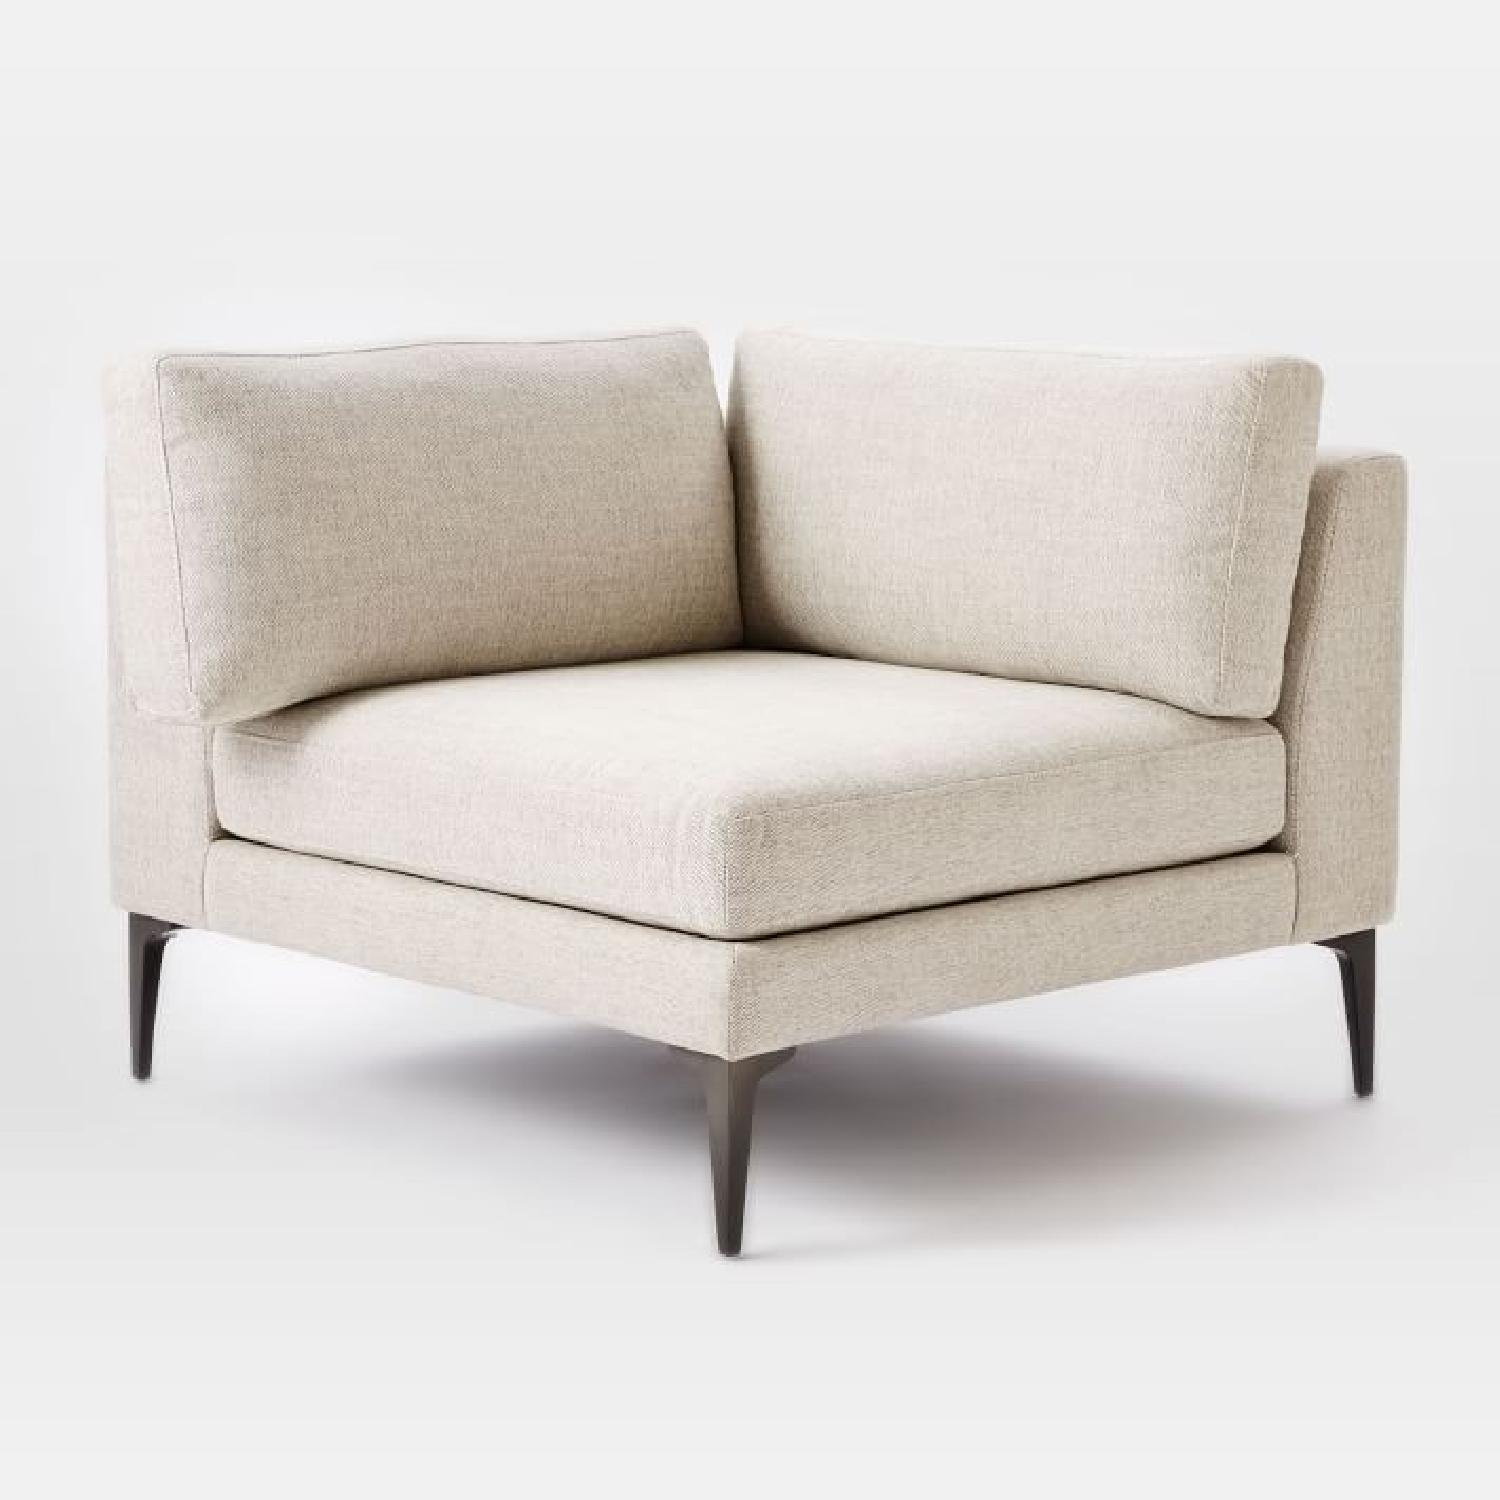 West Elm Andes Corner Chair